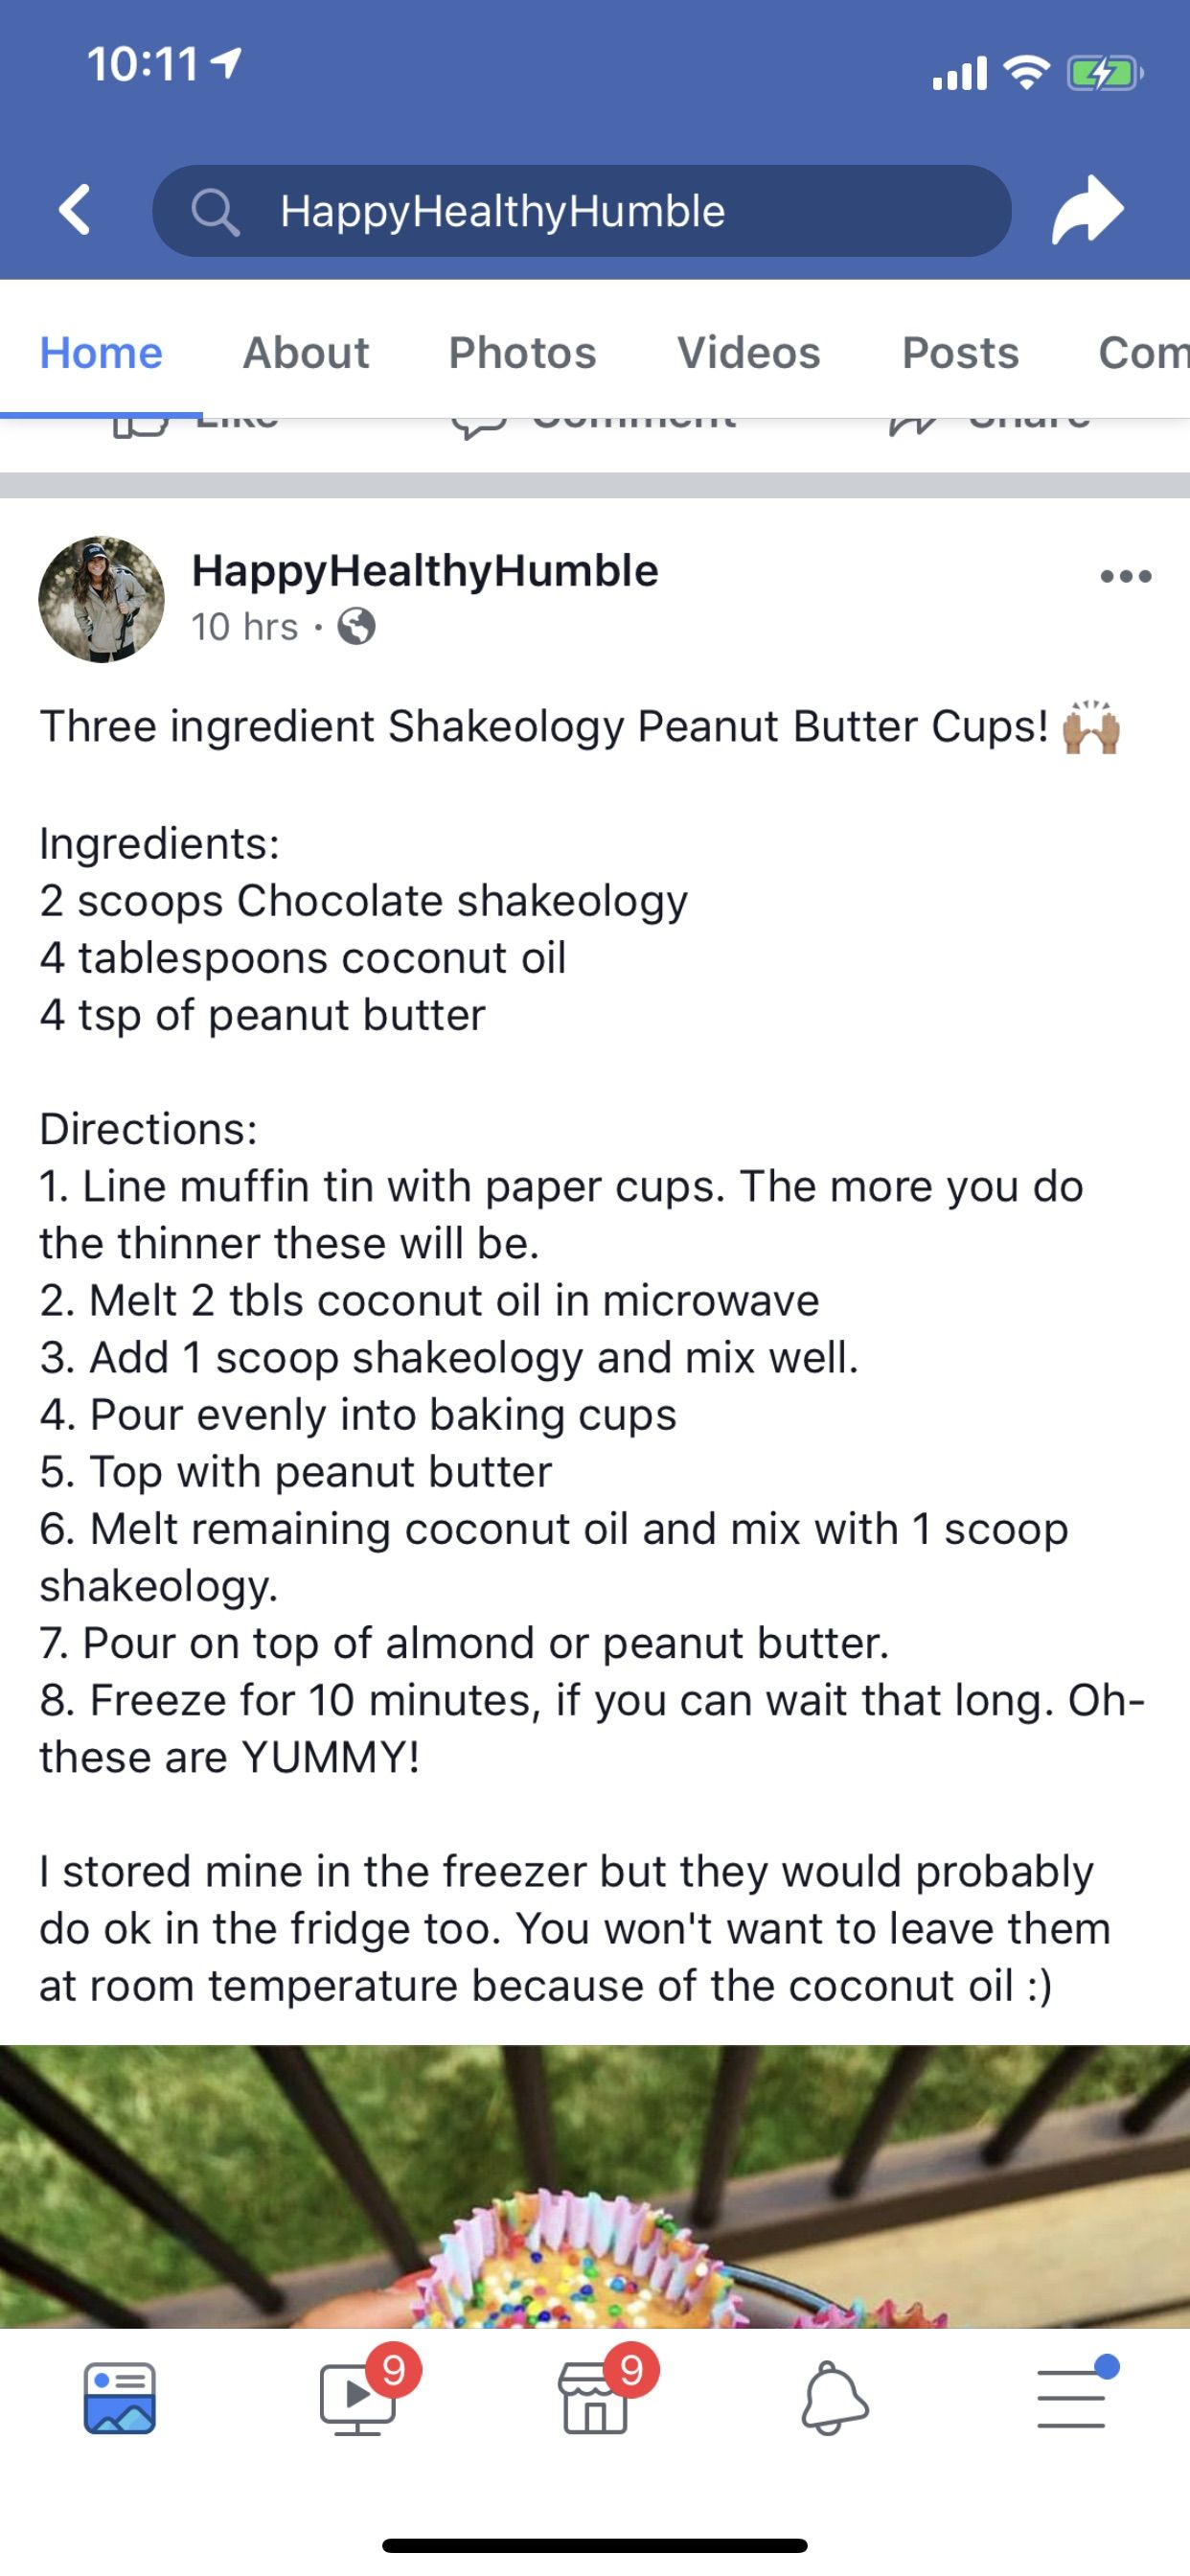 Pin by Kim Younghans Skavnak on 21 day fix Chocolate